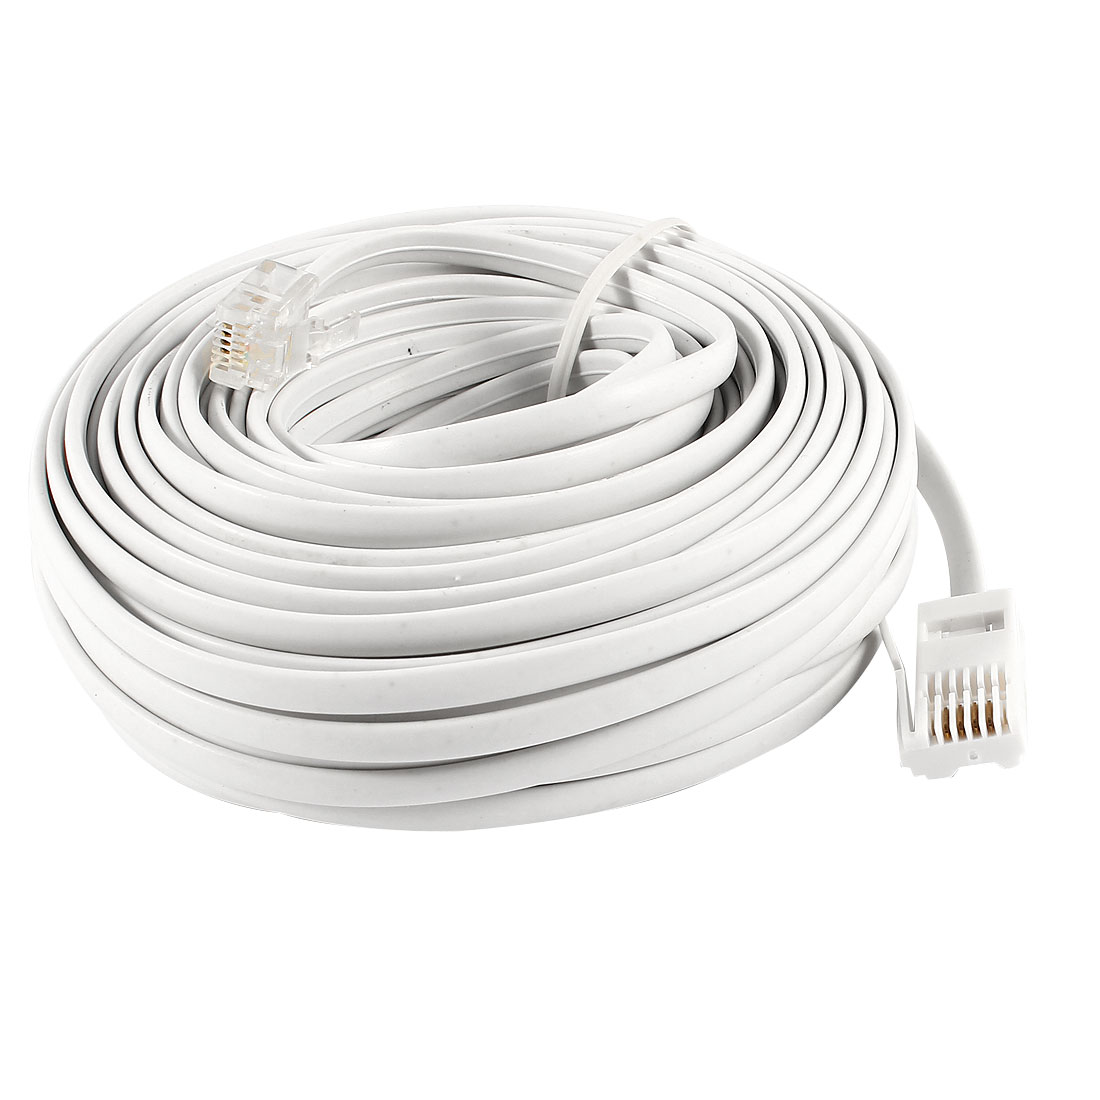 15M 49ft RJ11 to UK BT 6P4C M/M Modular Telephone Phone Cables White